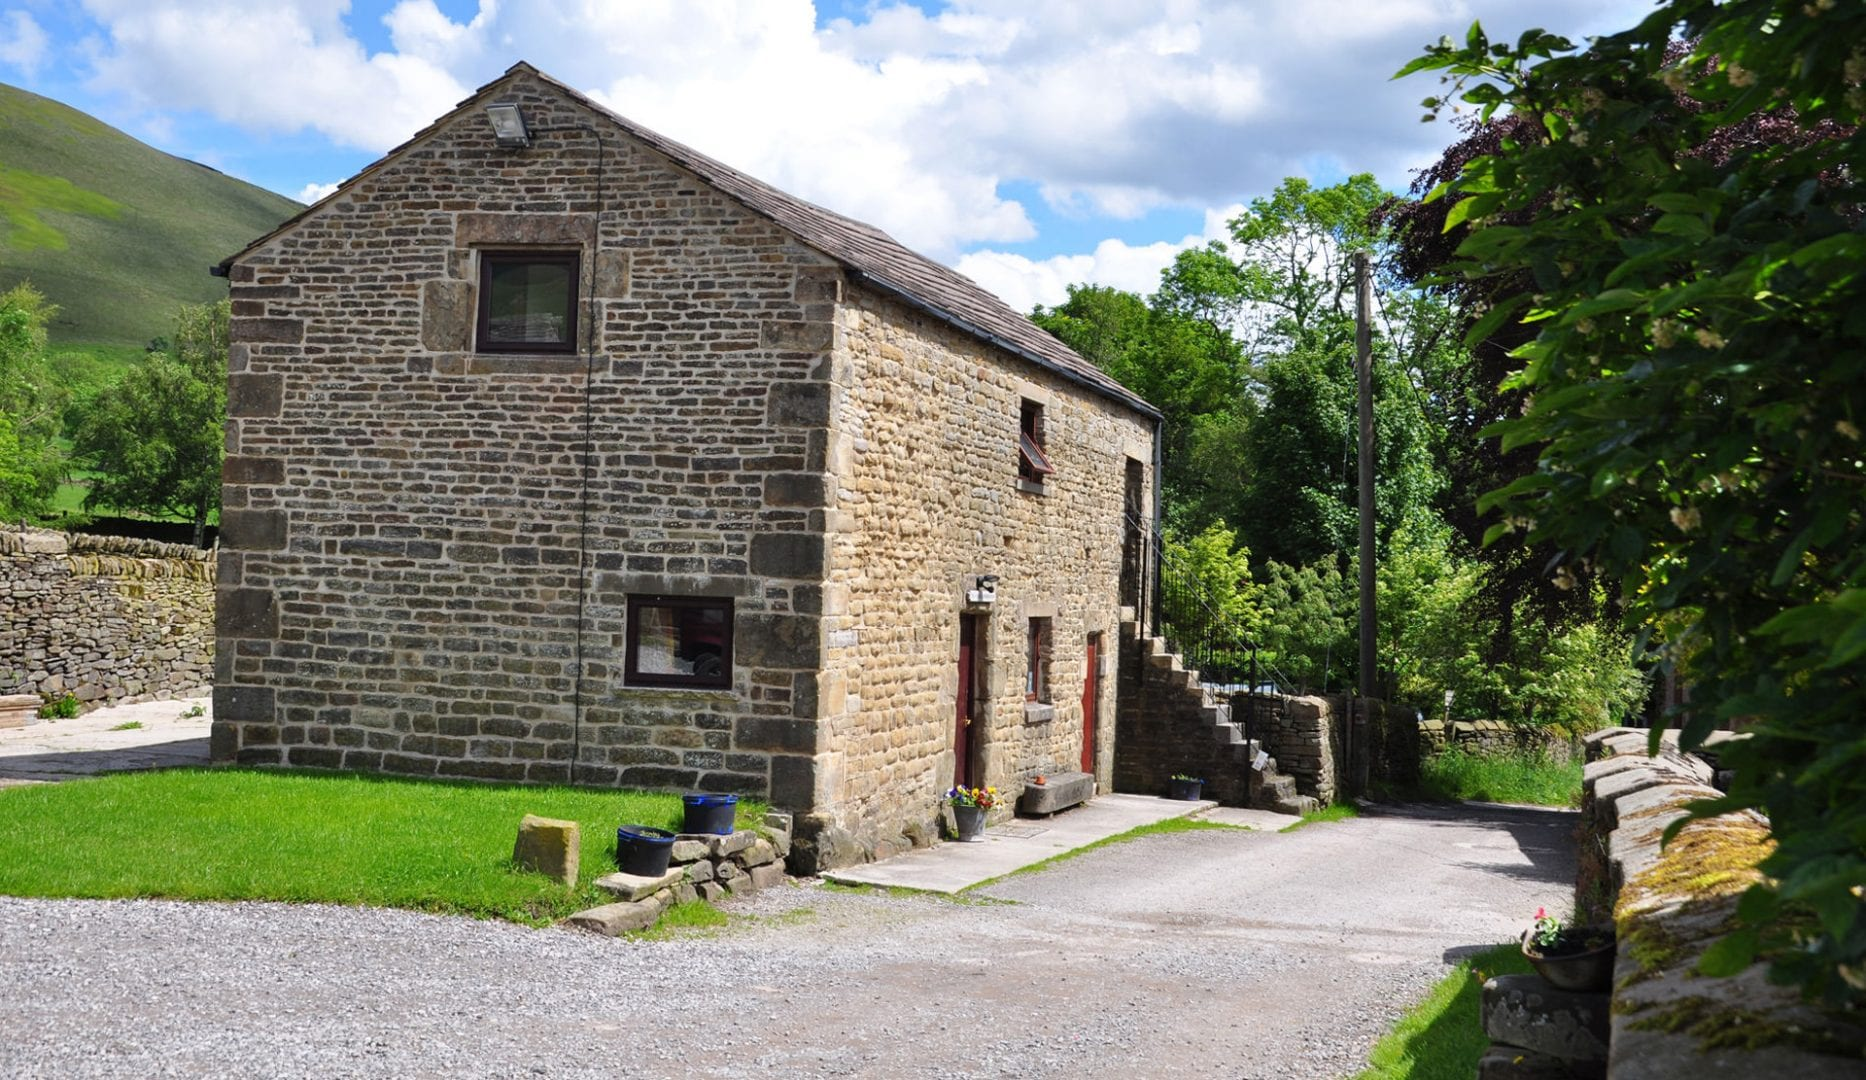 Ollerbrook Bunkhouse Ollerbrook Booth Edale Hope Valley